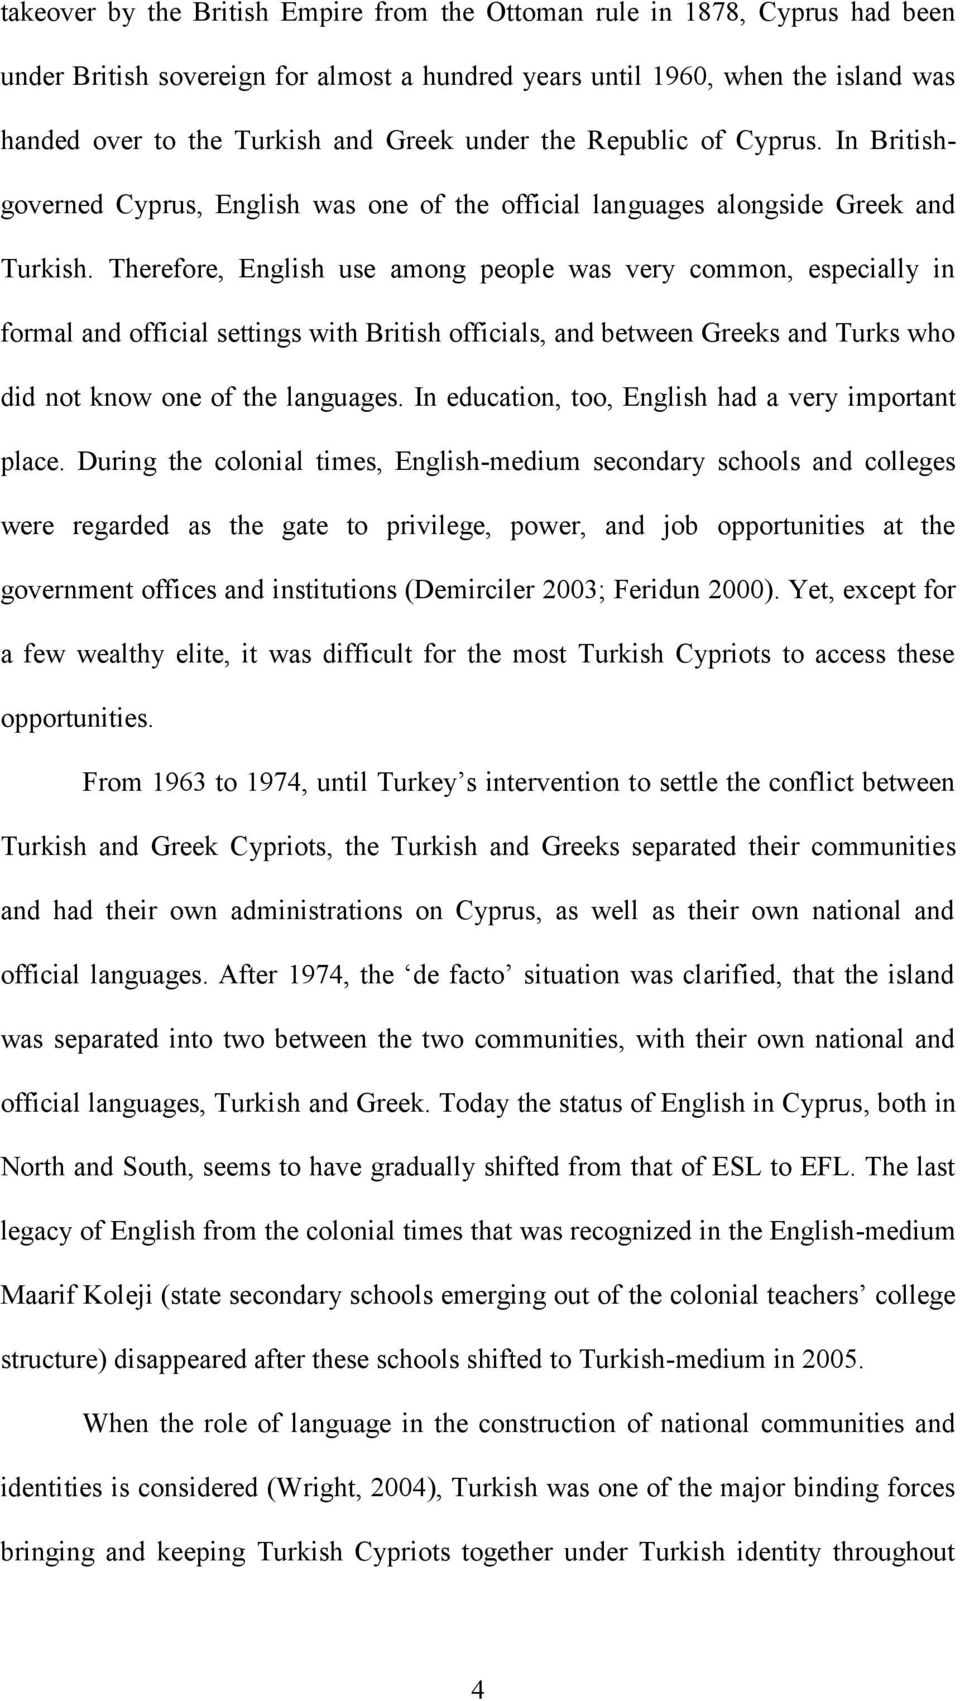 Therefore, English use among people was very common, especially in formal and official settings with British officials, and between Greeks and Turks who did not know one of the languages.